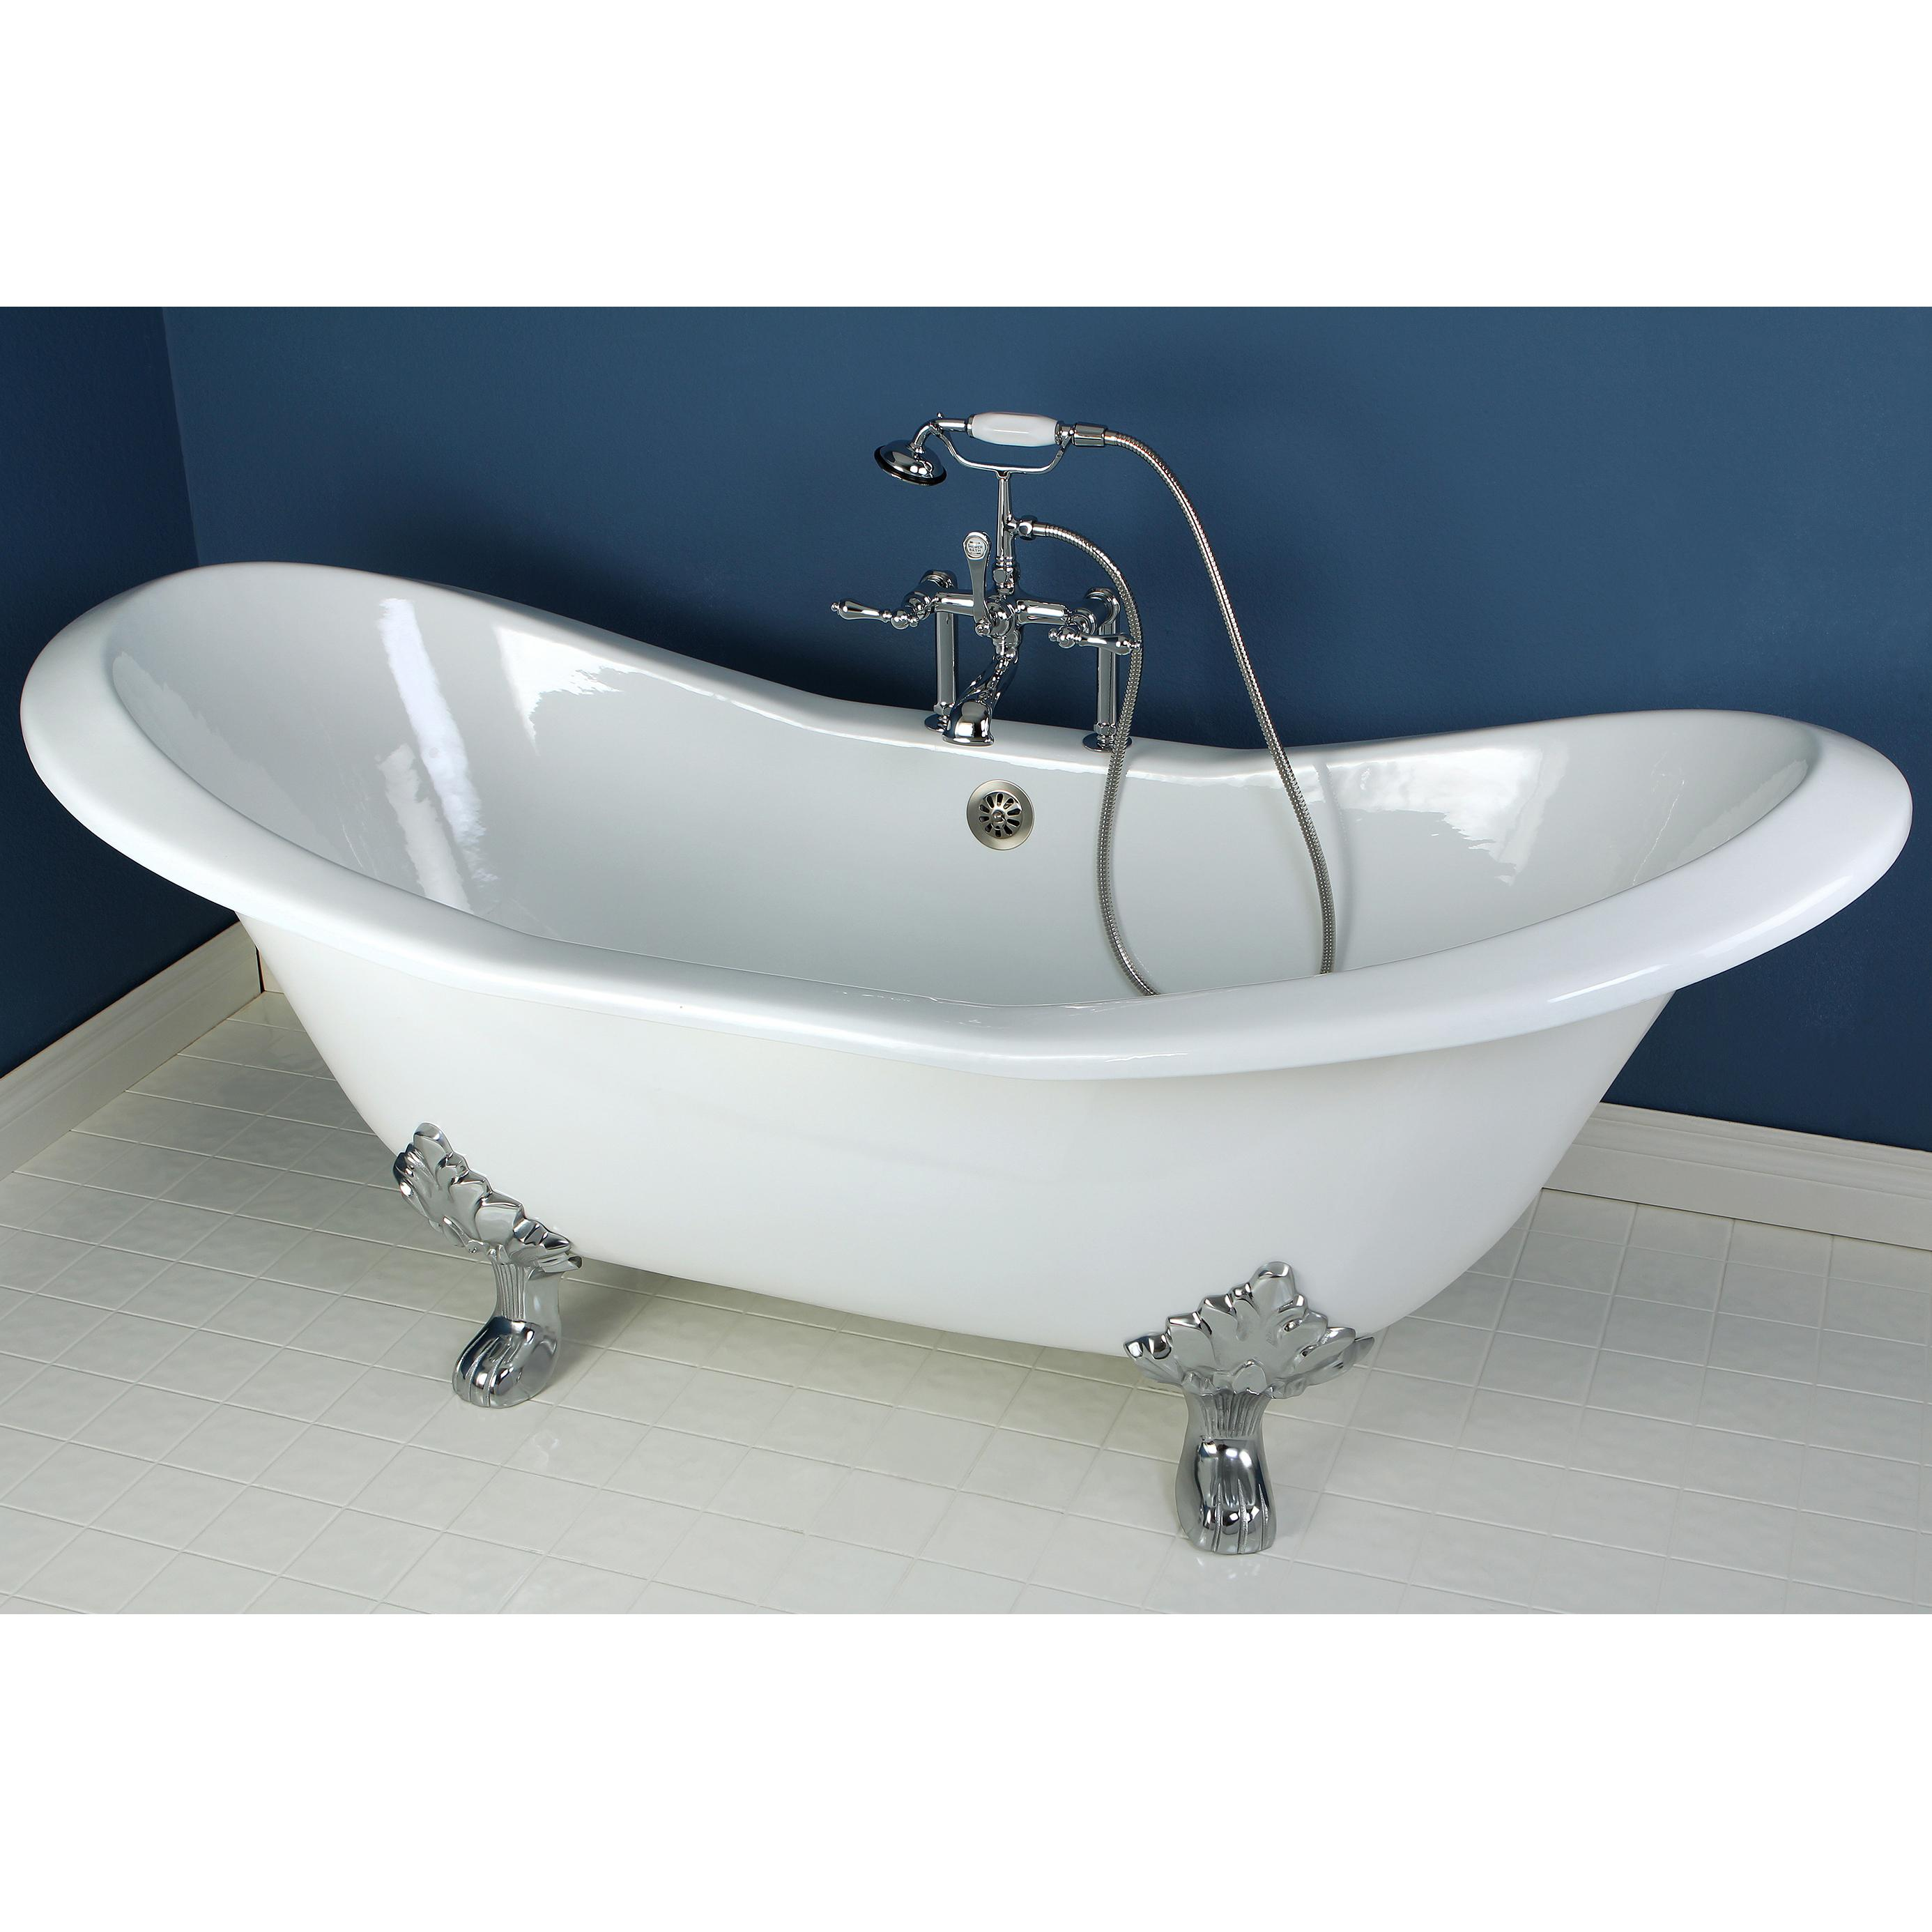 Kingston brass aqua eden vct7d7231nc1 cast iron double for 4 foot bath tub